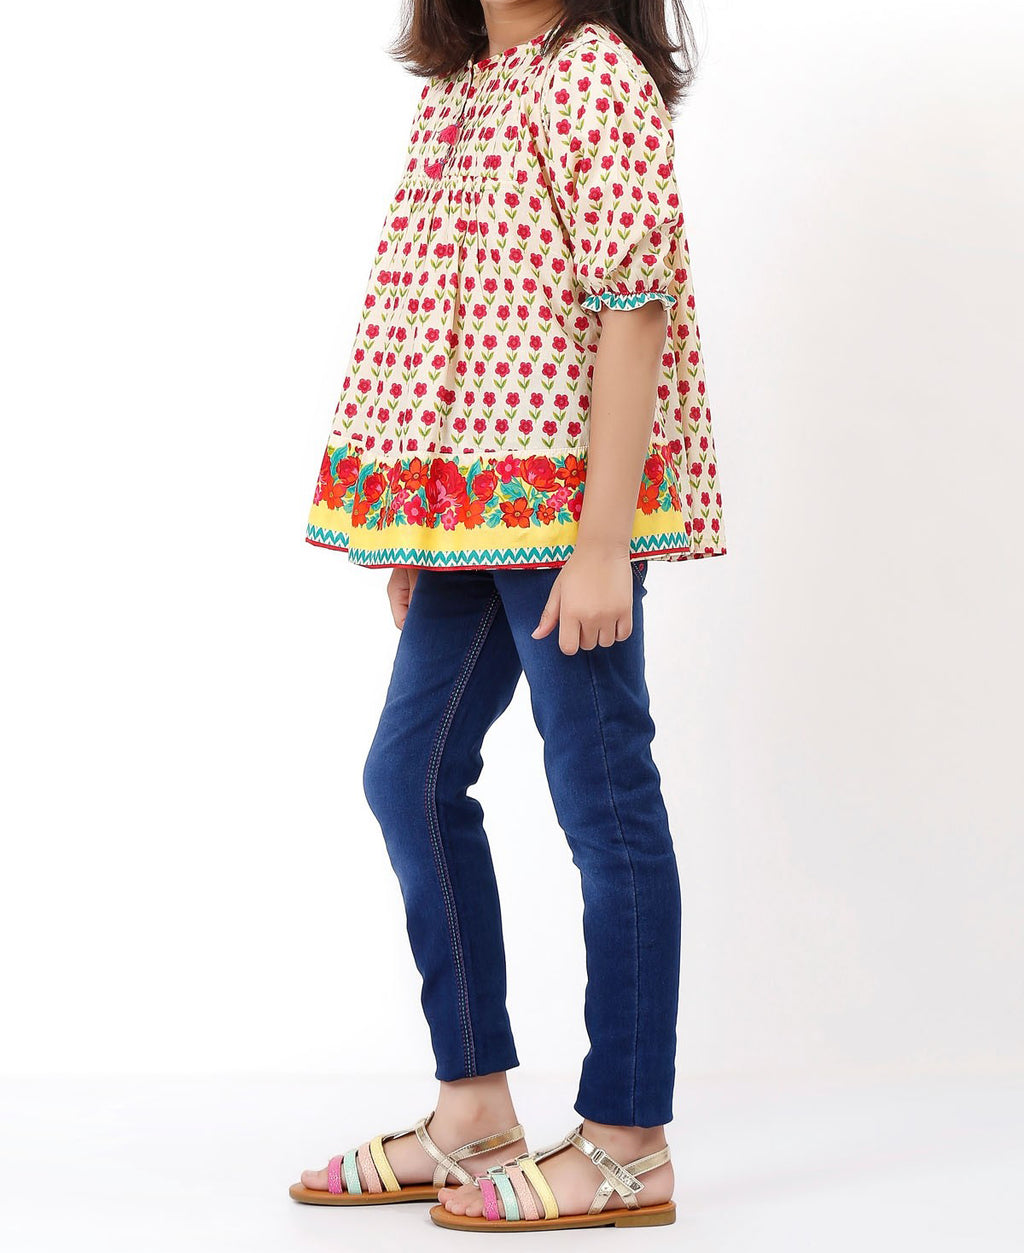 GBP17201 Girl's Blouse - Komal's